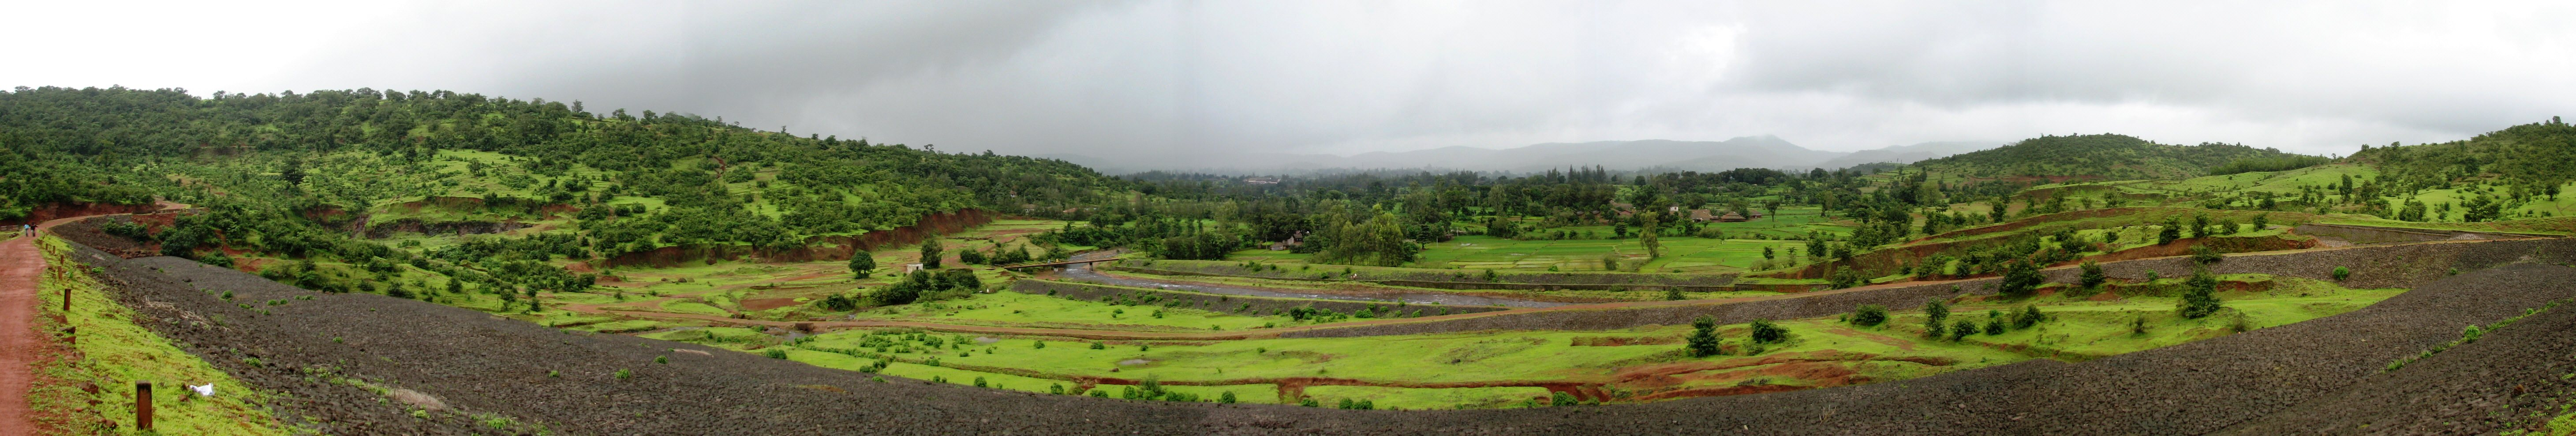 The lush green landscape of the area